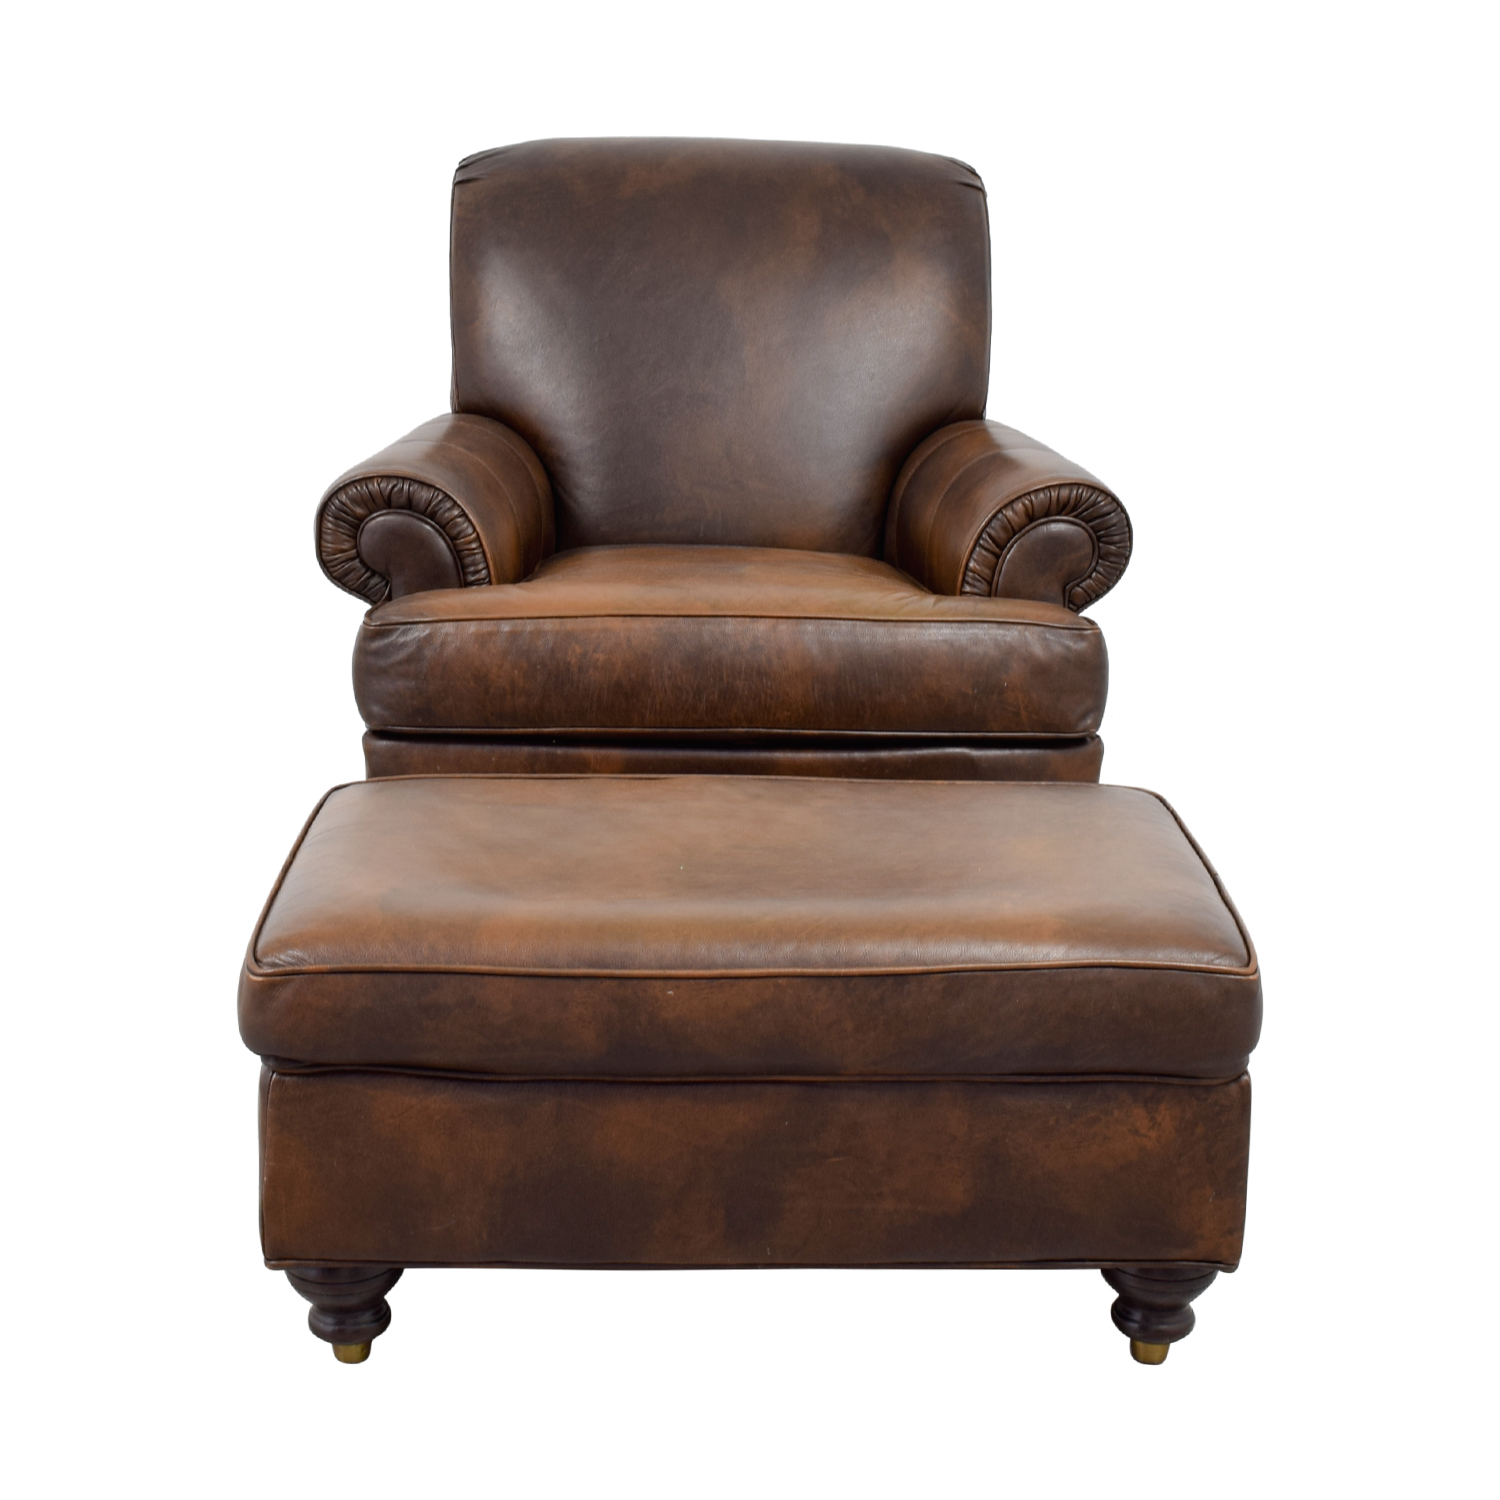 Peachy 84 Off Ethan Allen Ethan Allen Brown Leather Chair Ottoman Chairs Dailytribune Chair Design For Home Dailytribuneorg